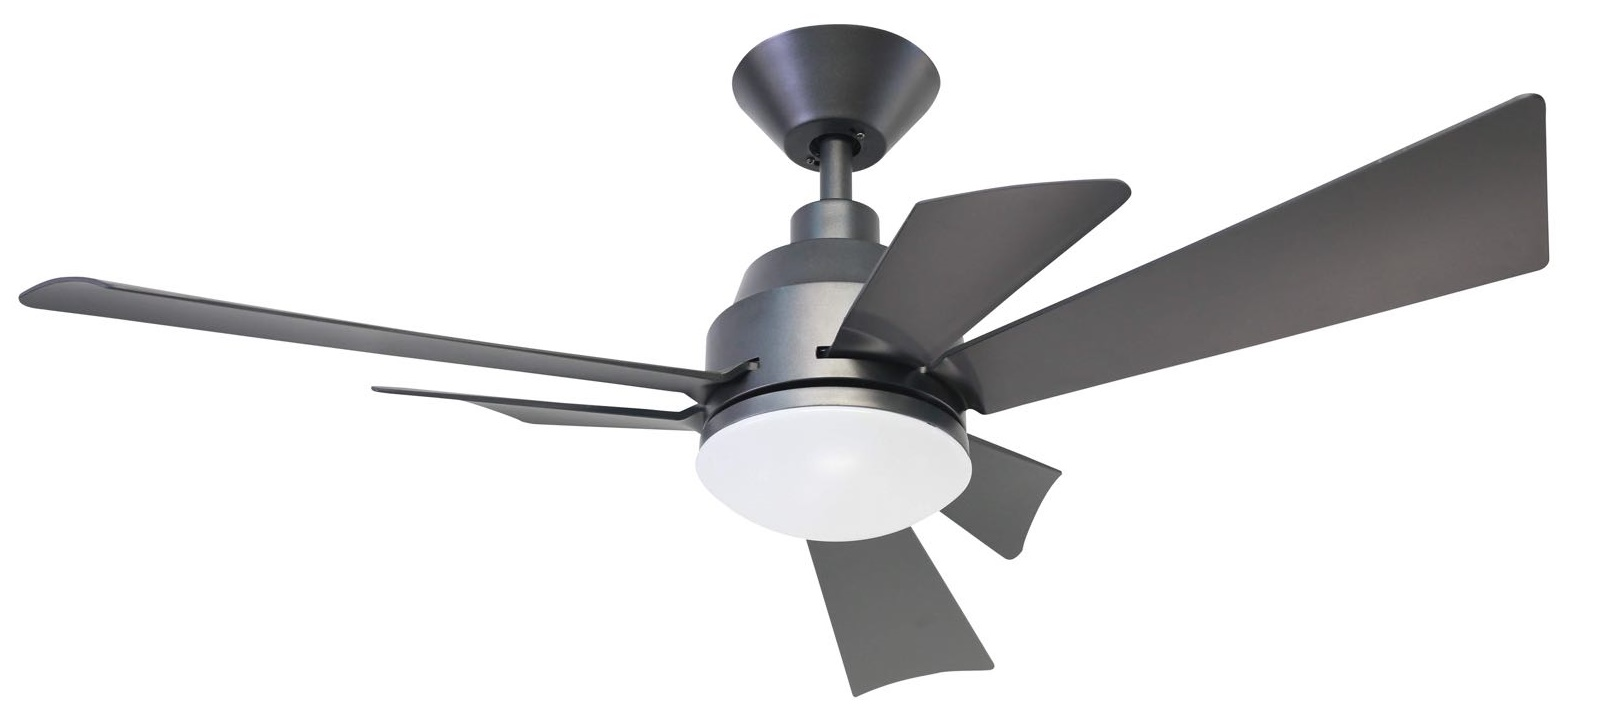 Ceiling Fan Singapore Kdk Fanco Wiring A Black Red White Kaze Fujin Dc Motor 48 Inch With 3 Twin Blades Color